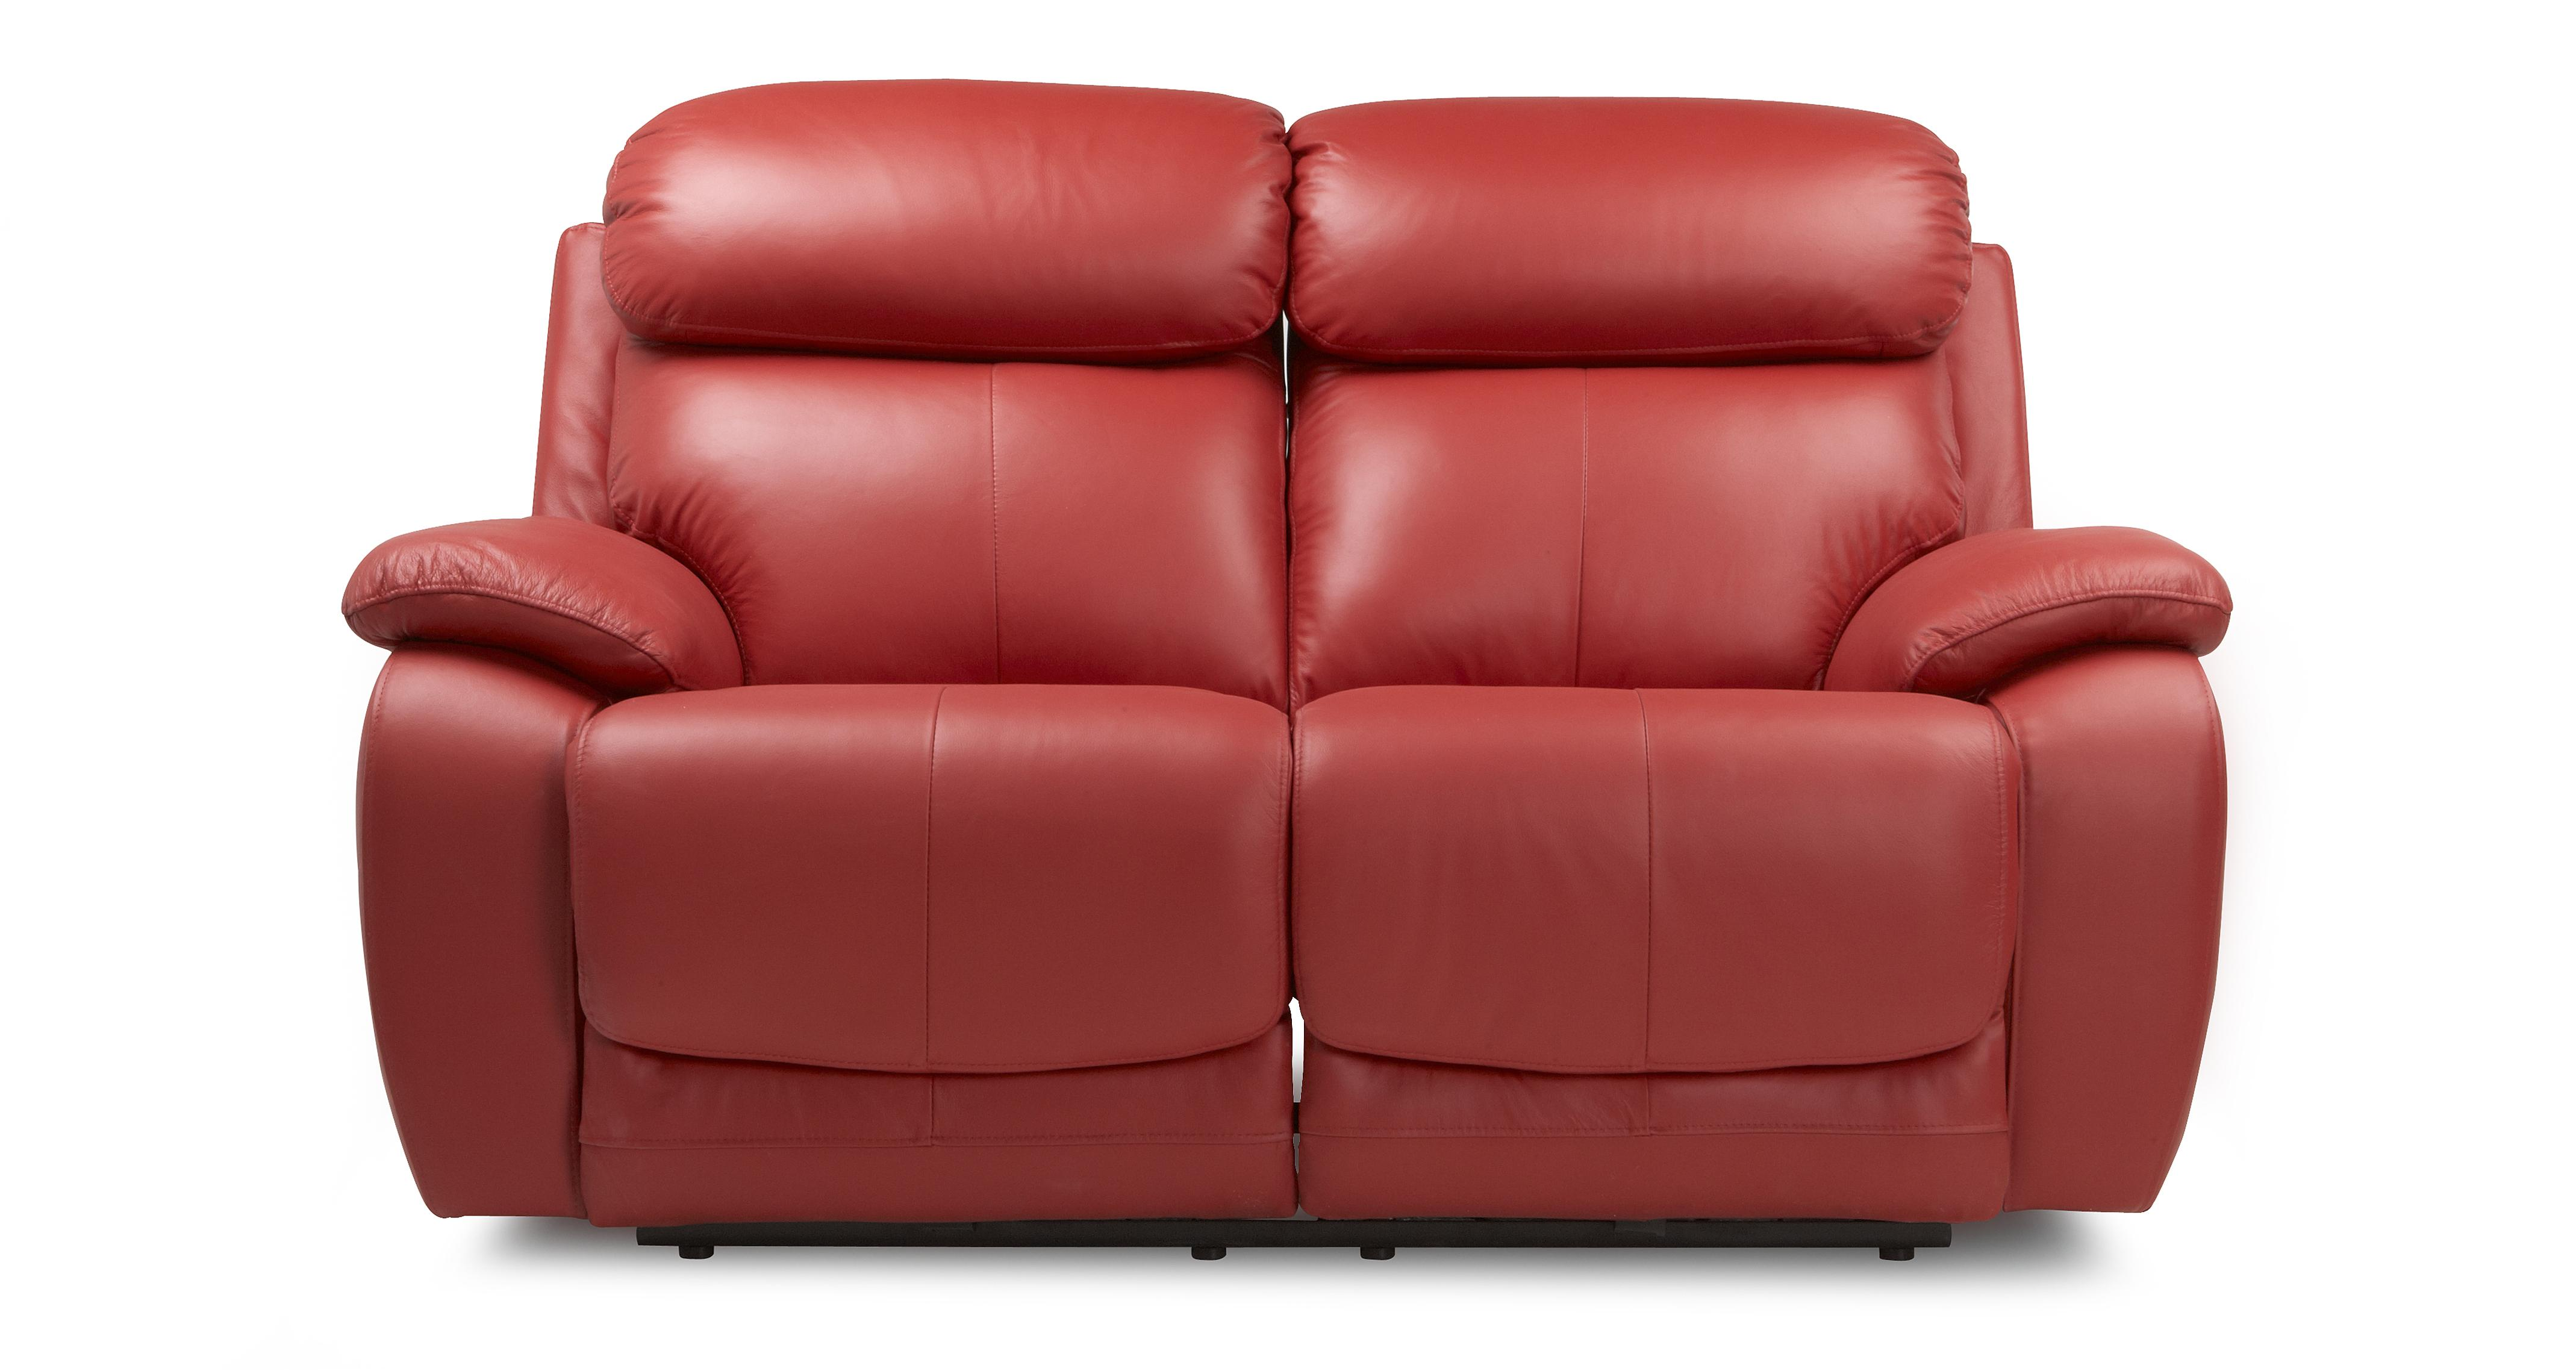 Daytona 2 Seater Electric Recliner Peru DFS